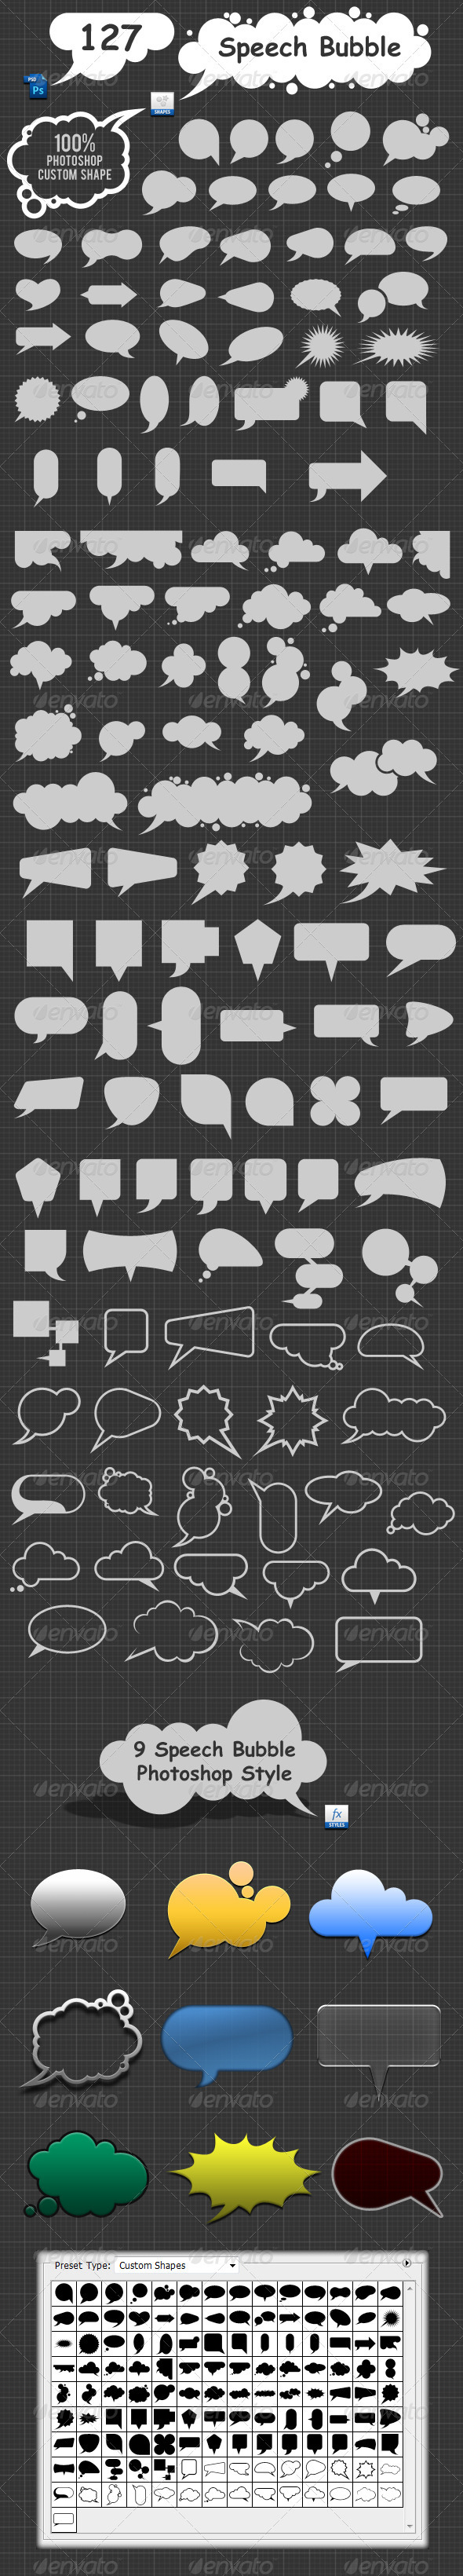 How To Download And Load Custom Shapes In Photoshop CS6/CC ...